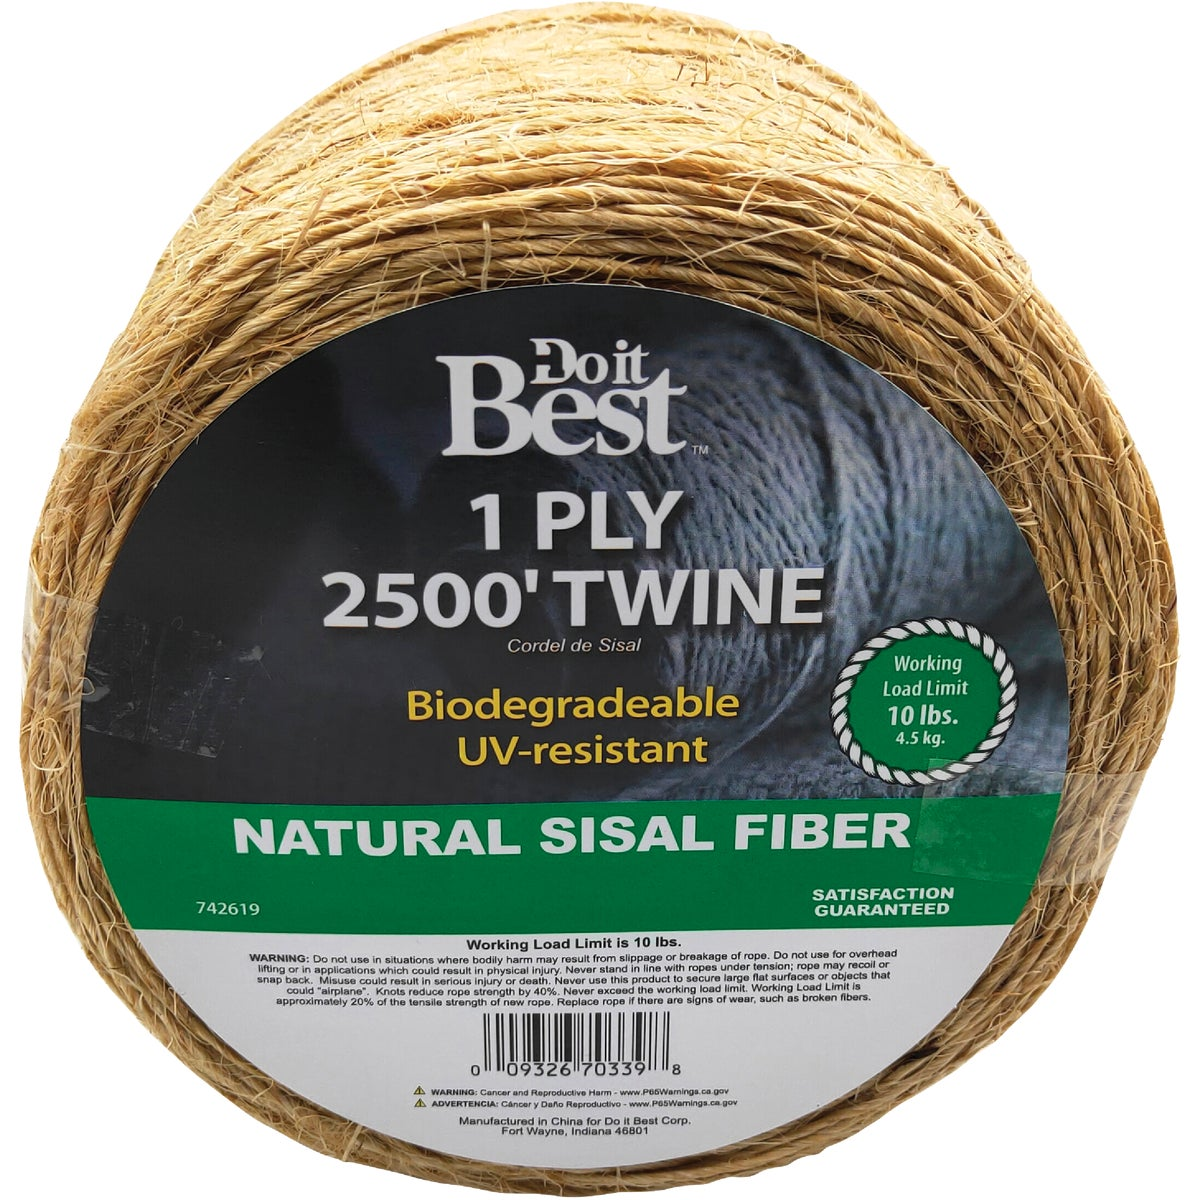 2500' 1PLY SISAL TWINE - 742619 by Do it Best